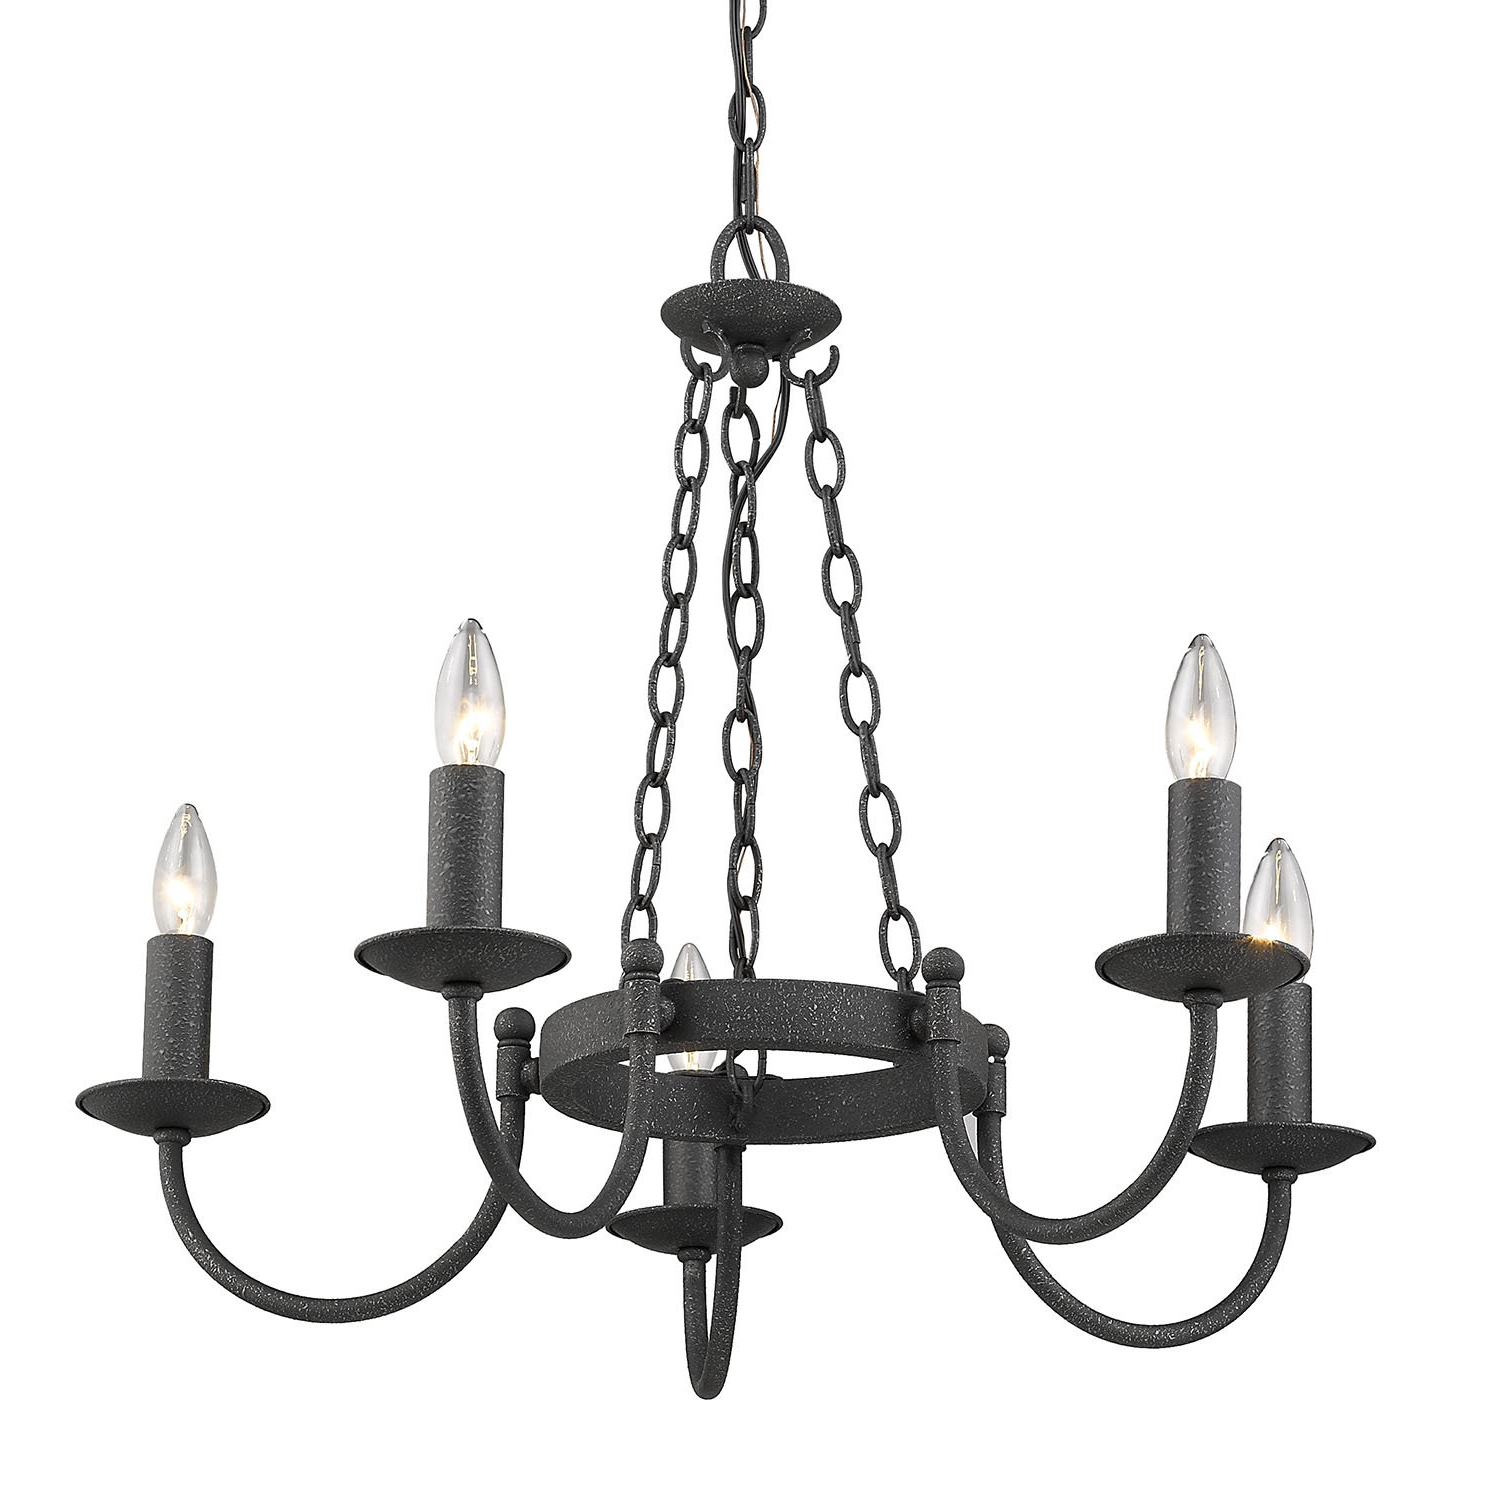 Shaylee 5 Light Candle Style Chandeliers In Fashionable Barcroft 5 Light Candle Style Chandelier (View 15 of 25)